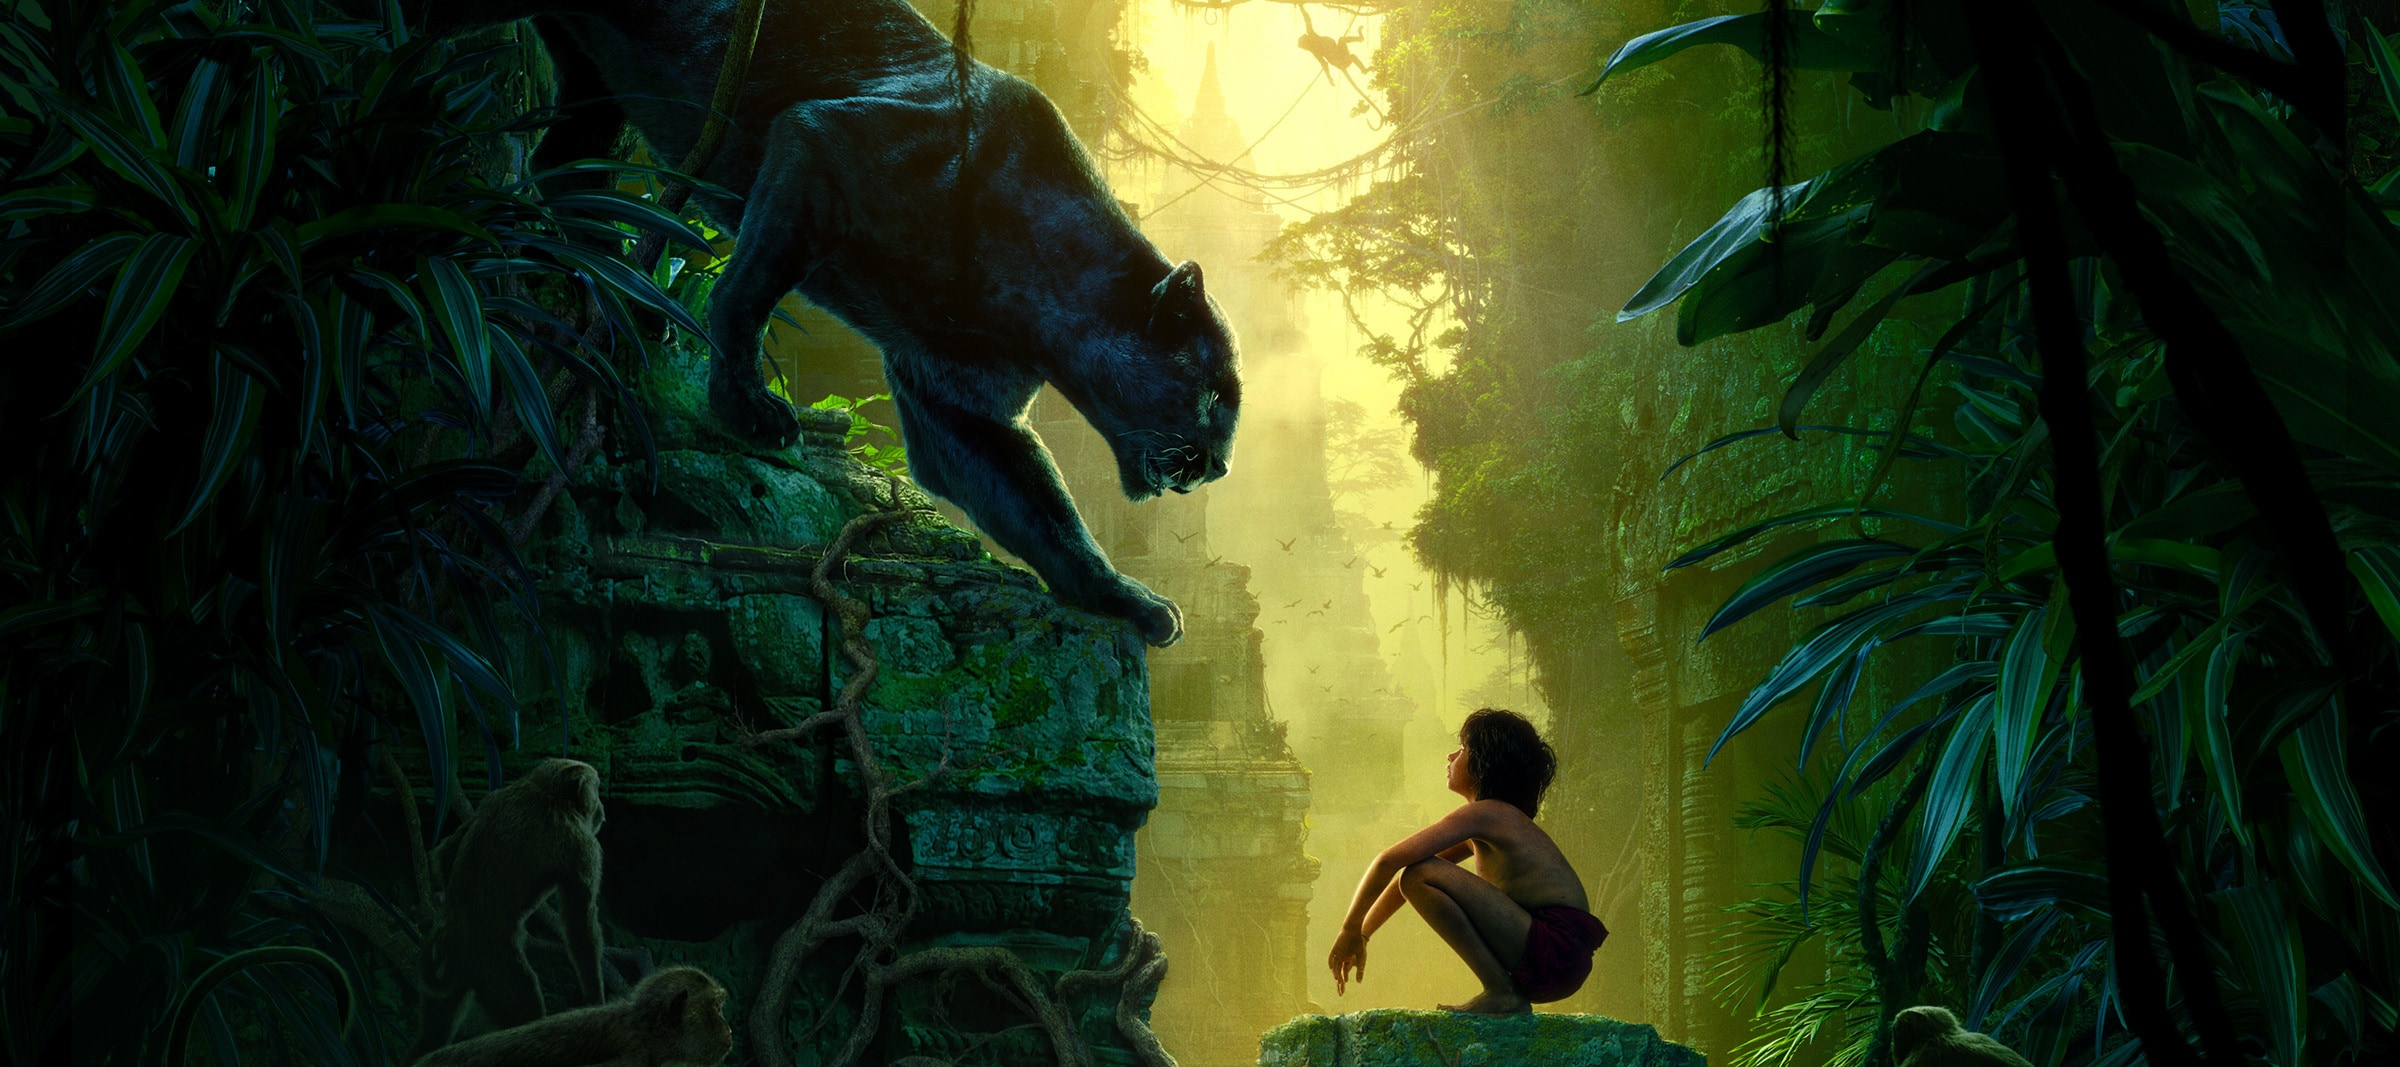 The Jungle Book - Static Poster Flex Hero